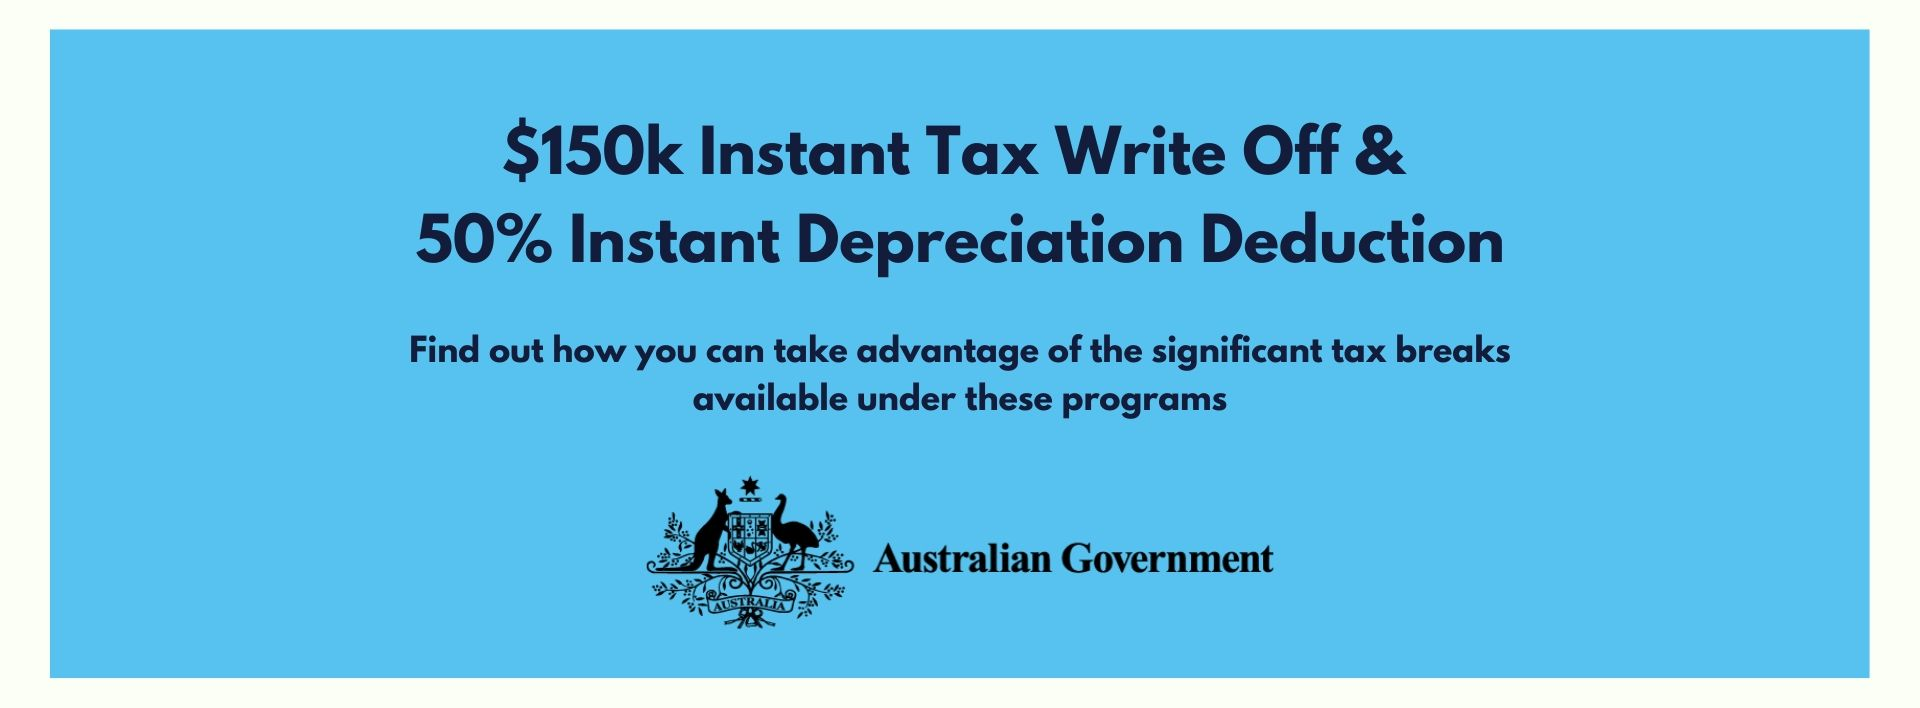 $150k Instant Tax Write Off & 50% Instant Depreciation Deduction